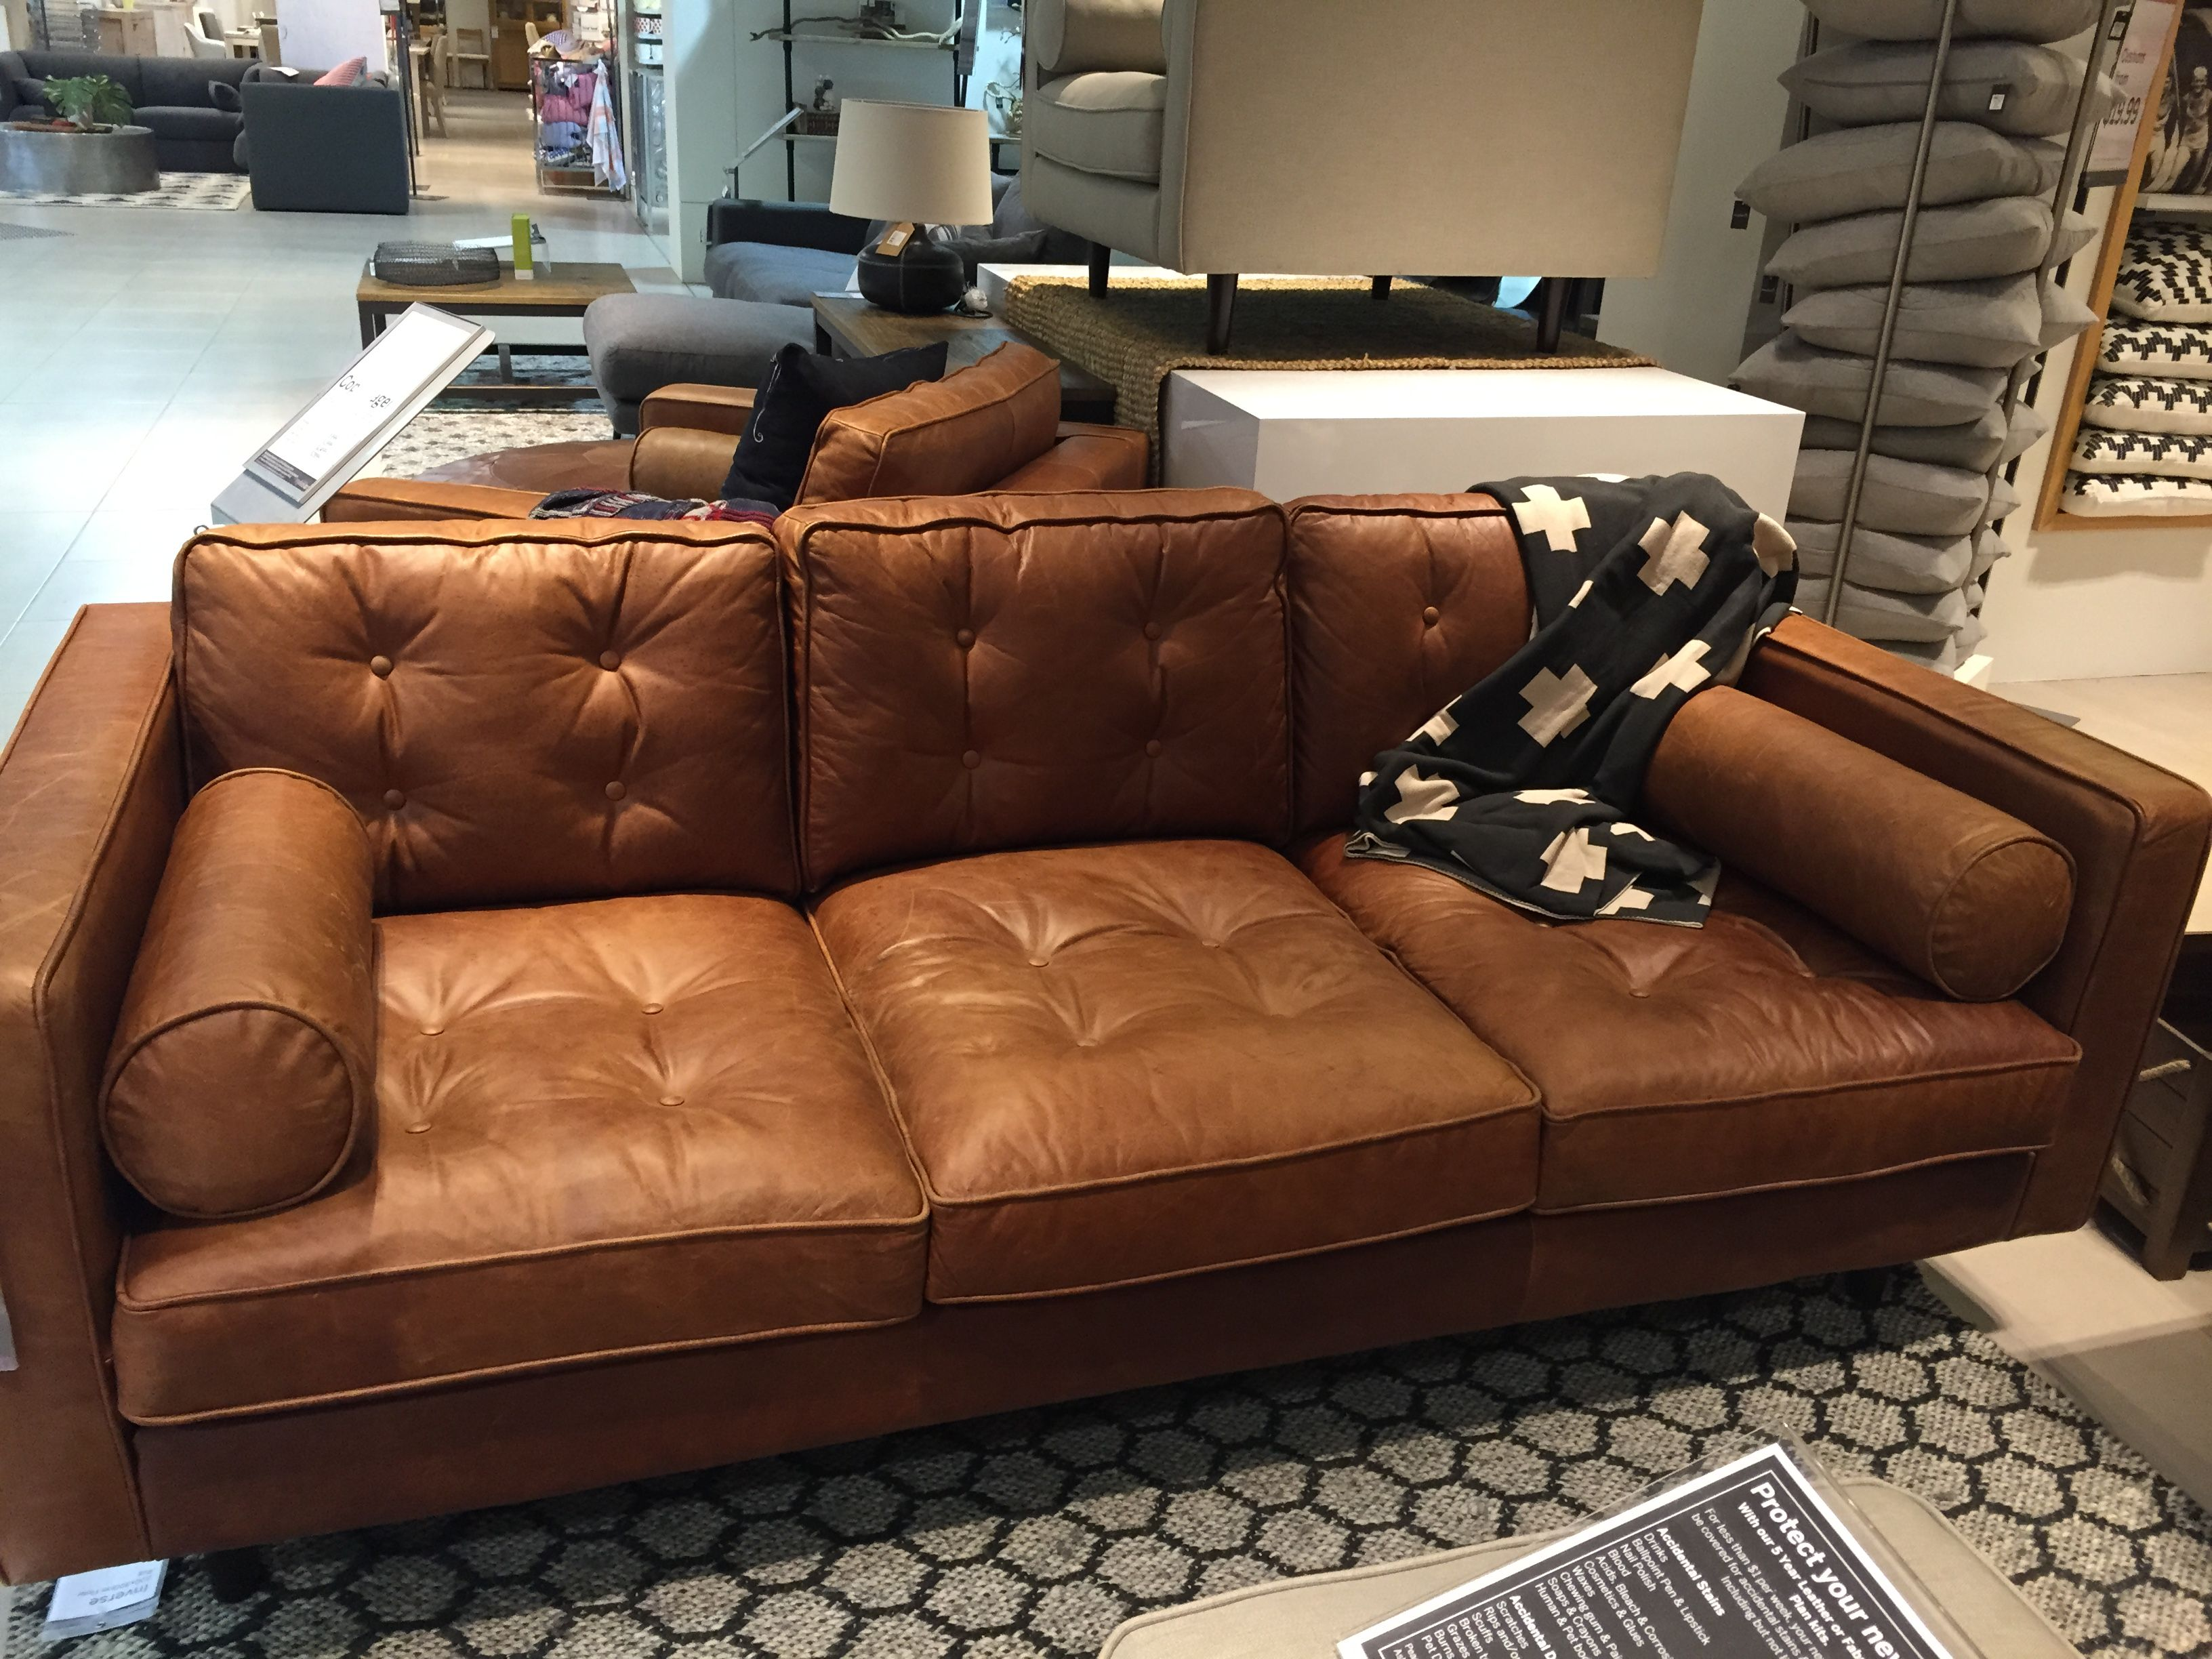 Copenhagen 2 5 Tan Leather Sofa From Freedom Sofa Styling Freedom Furniture Tan Leather Sofas